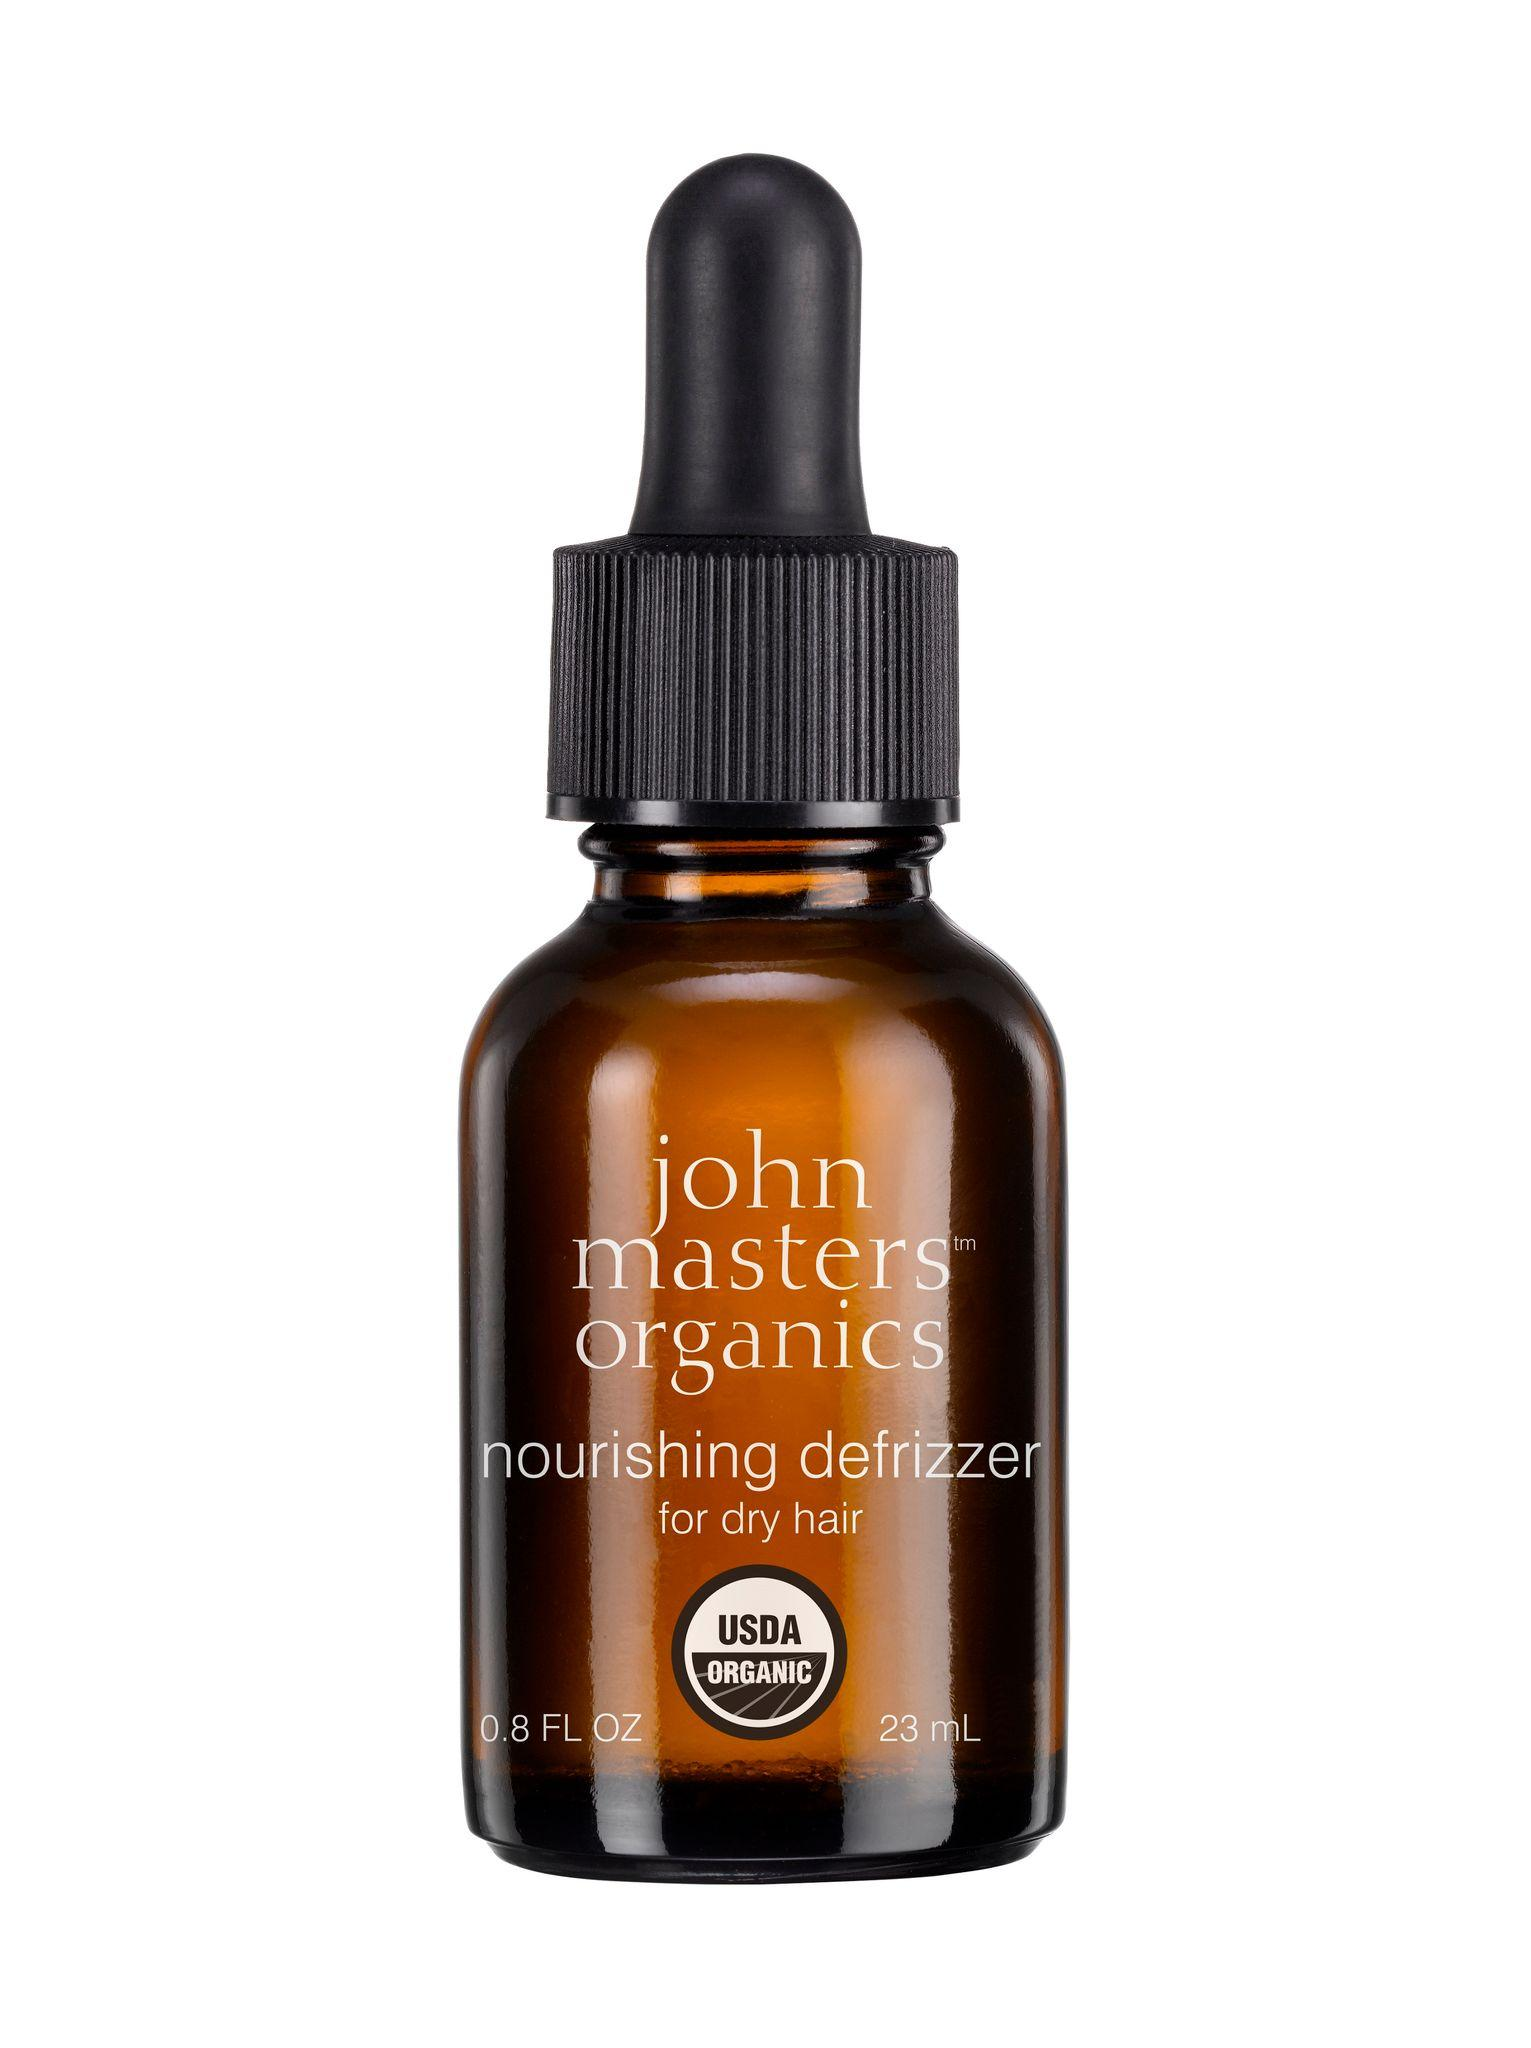 Nourishing Defrizzer for Dry Hair